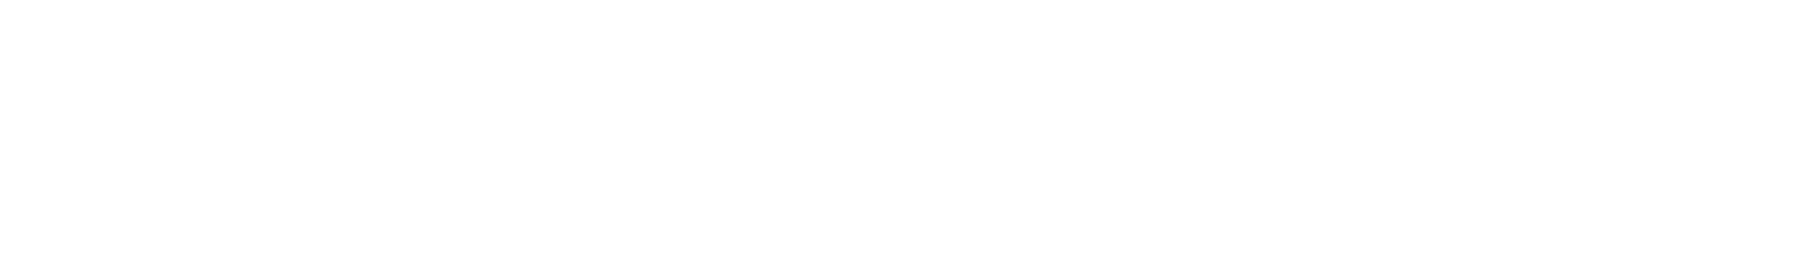 vocal lead